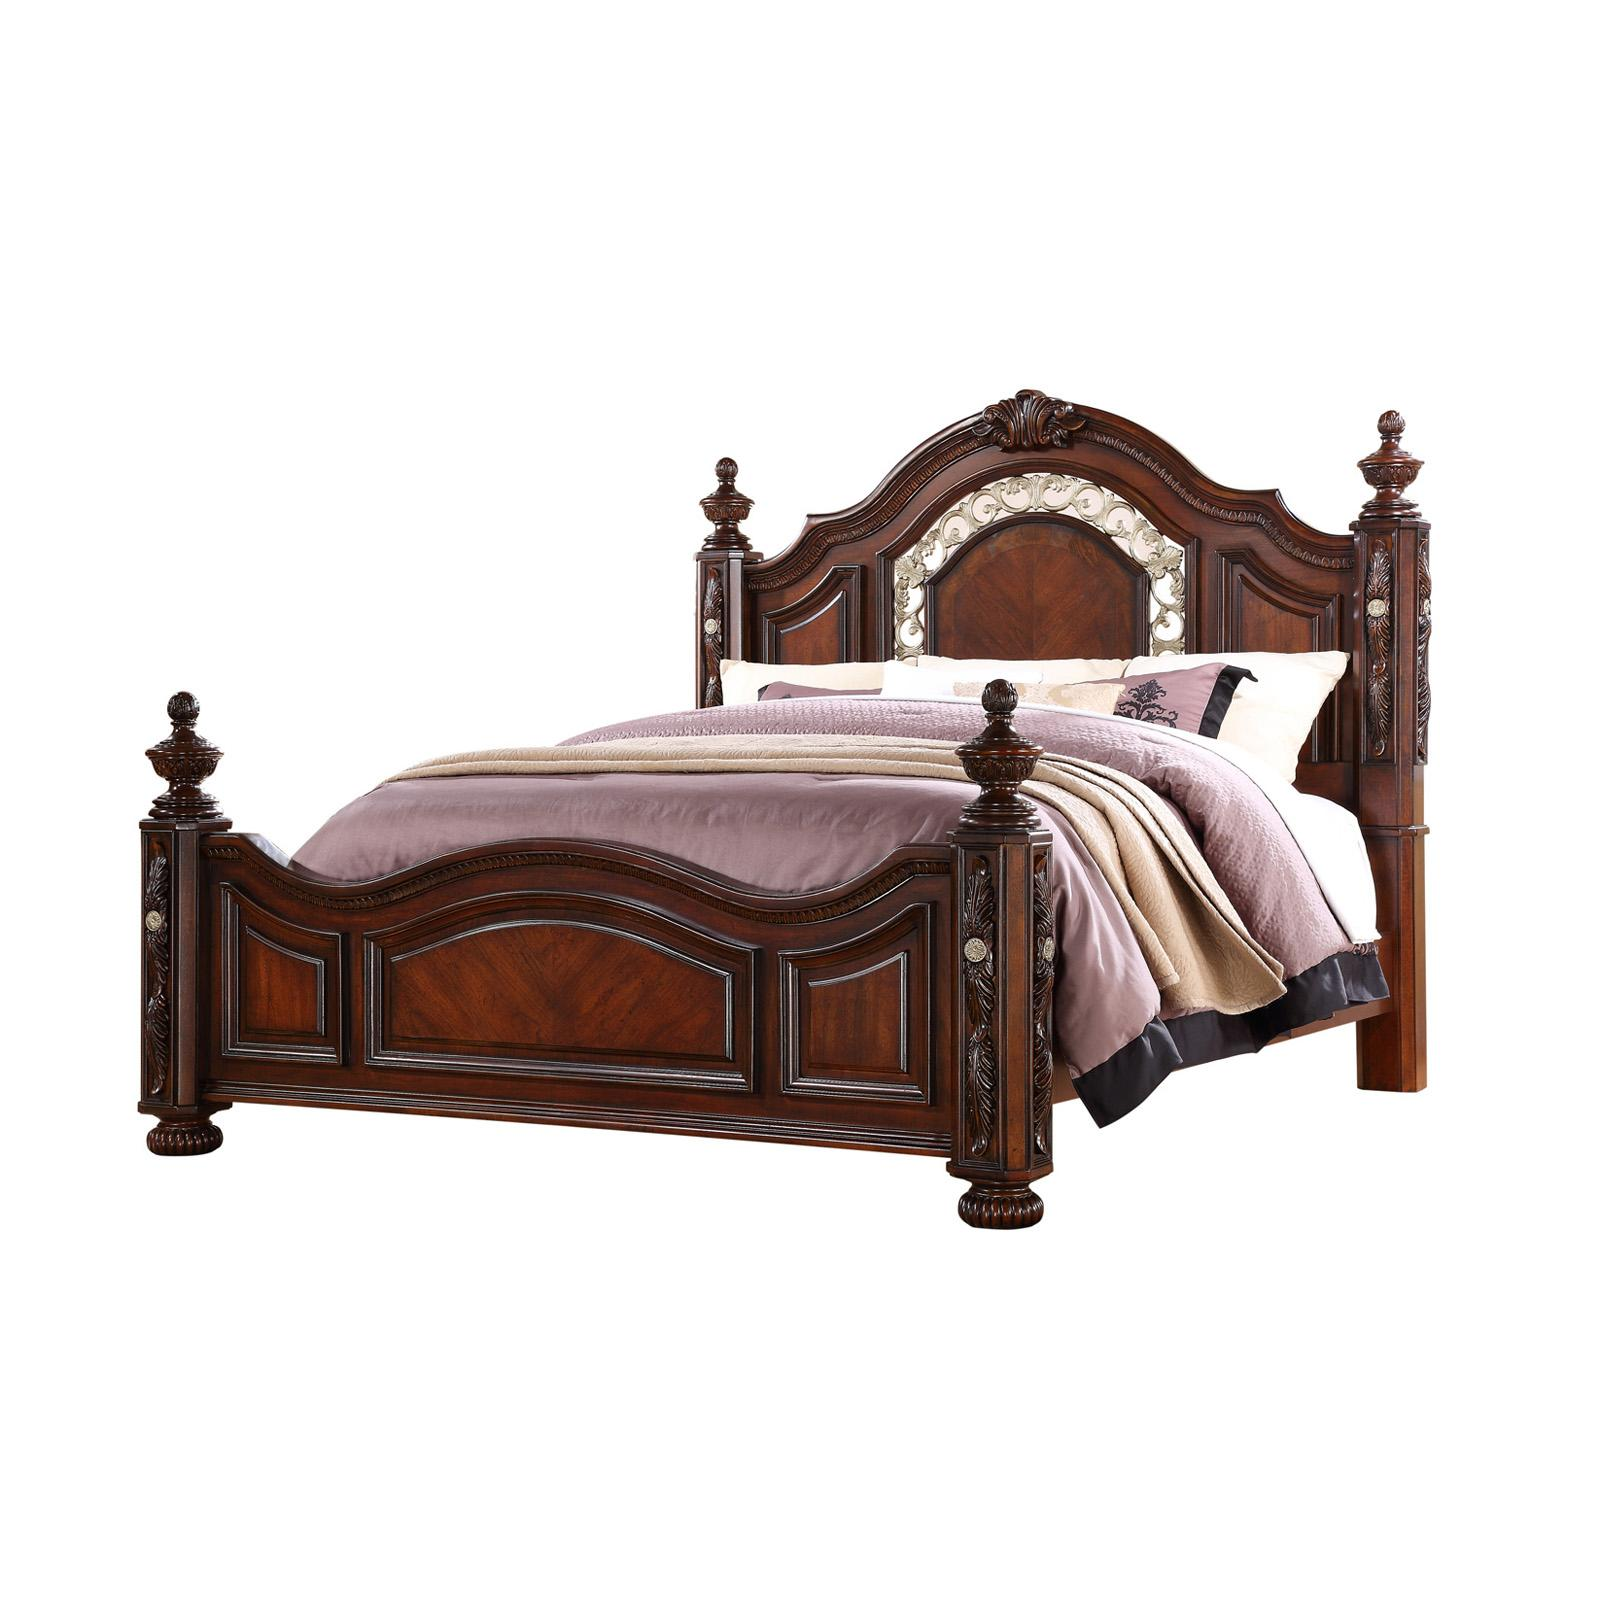 Oasis Home Verona Poster Bed - 5870-KINGBED